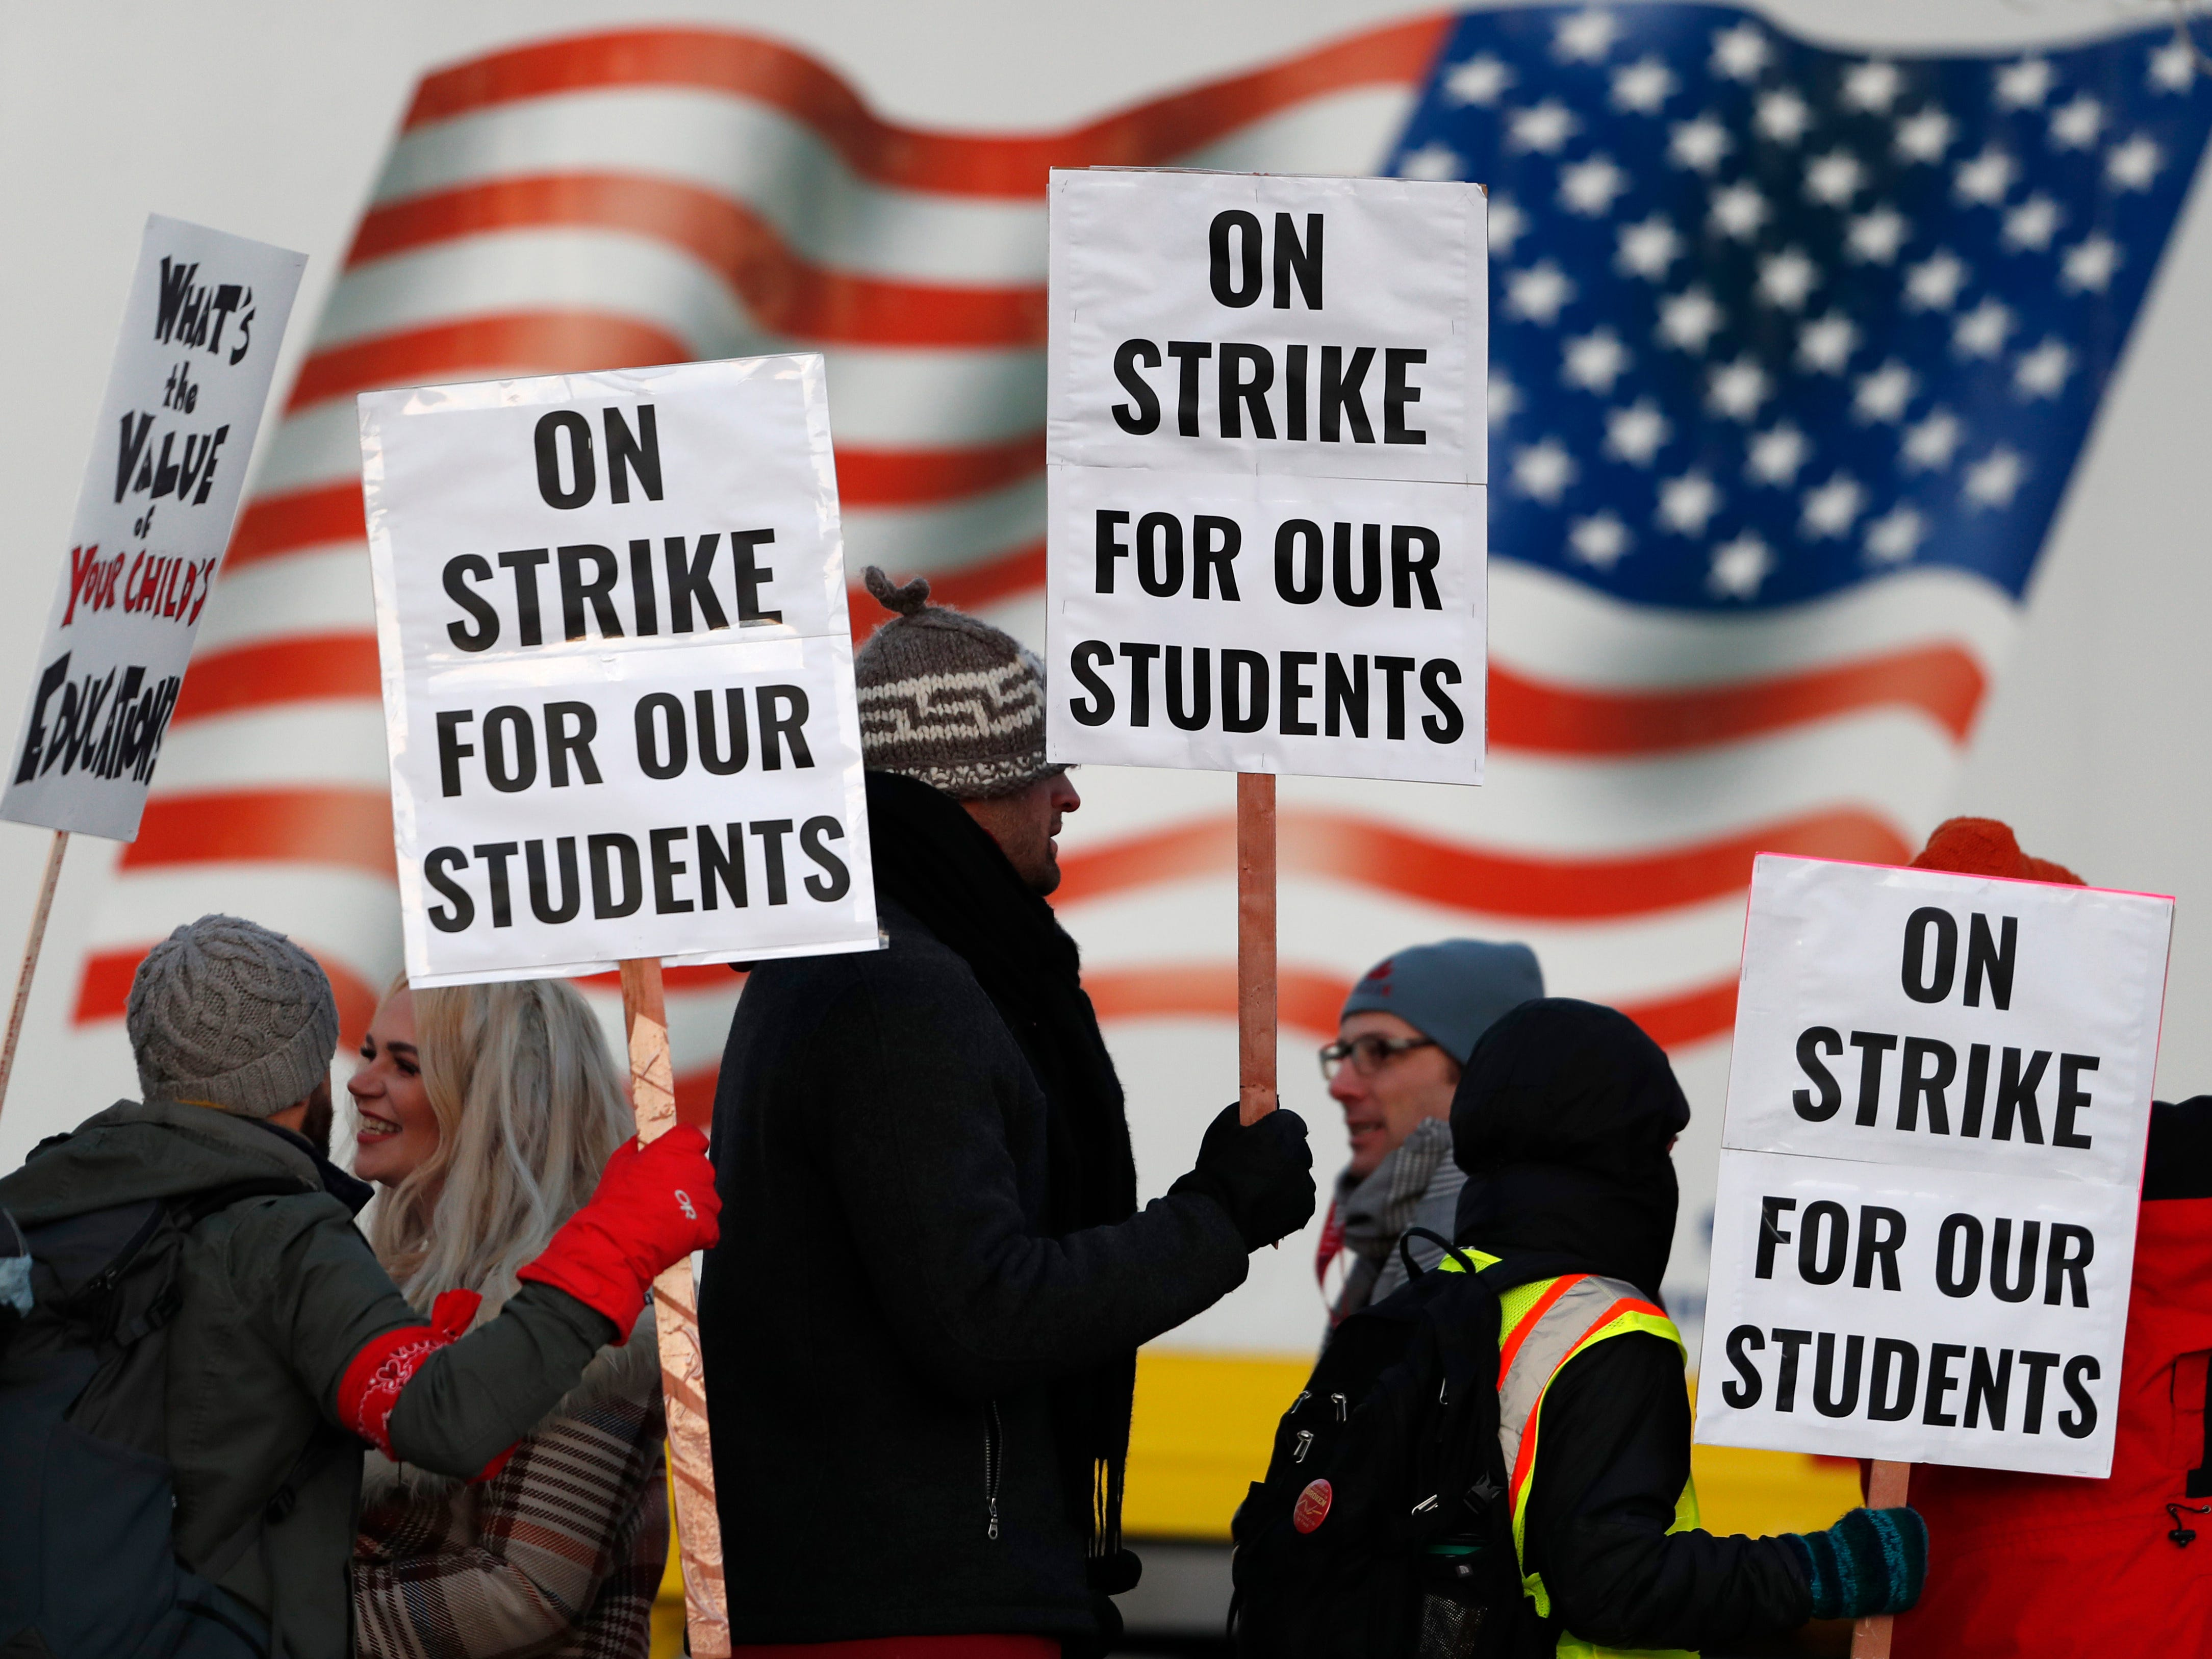 Teachers carry placards as they walk a picket line outside South High School early Monday, Feb. 11, 2019, in Denver. The strike on Monday is the first for teachers in Colorado in 25 years after failed negotiations with the school district over base pay. (AP Photo/David Zalubowski) ORG XMIT: CODZ102